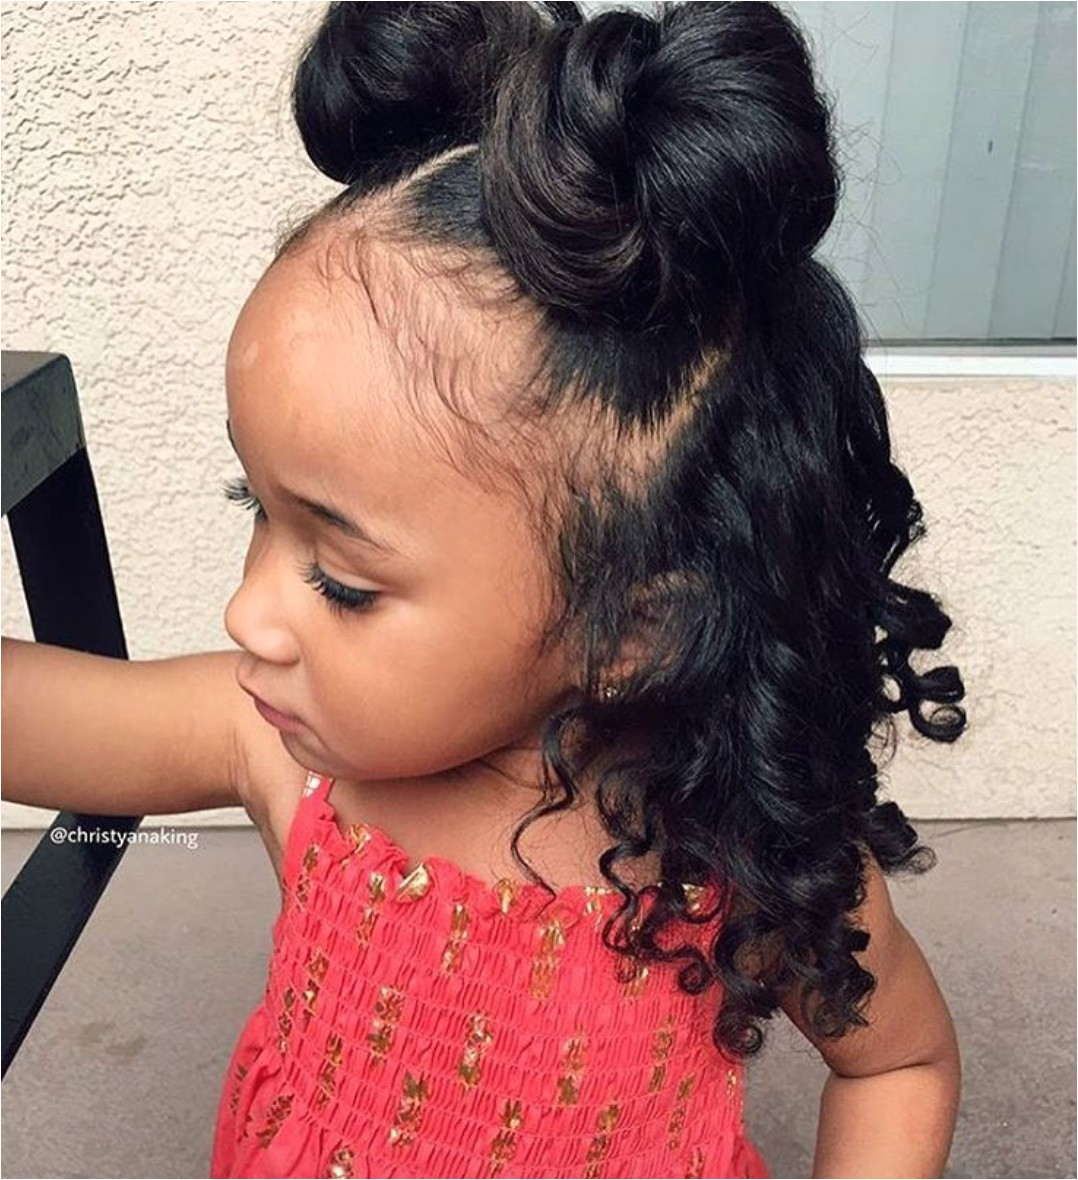 So adorable christyanaking gallery so adorable christyanaking So adorable christyanaking from Hairstyles For 1 Year Old Baby Girl